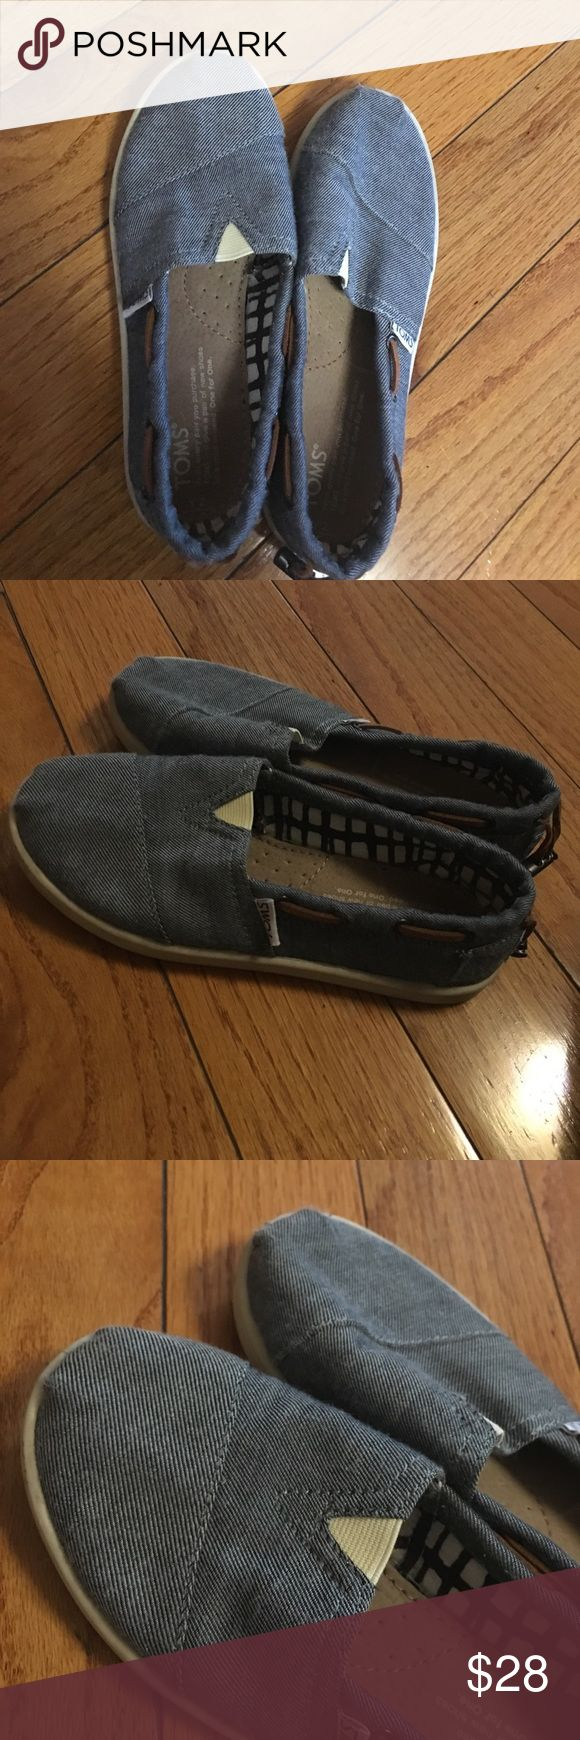 Kids Toms Boat Shoes Rarely used maybe 3 at most. Still in excellent condition TOMS Shoes Sneakers